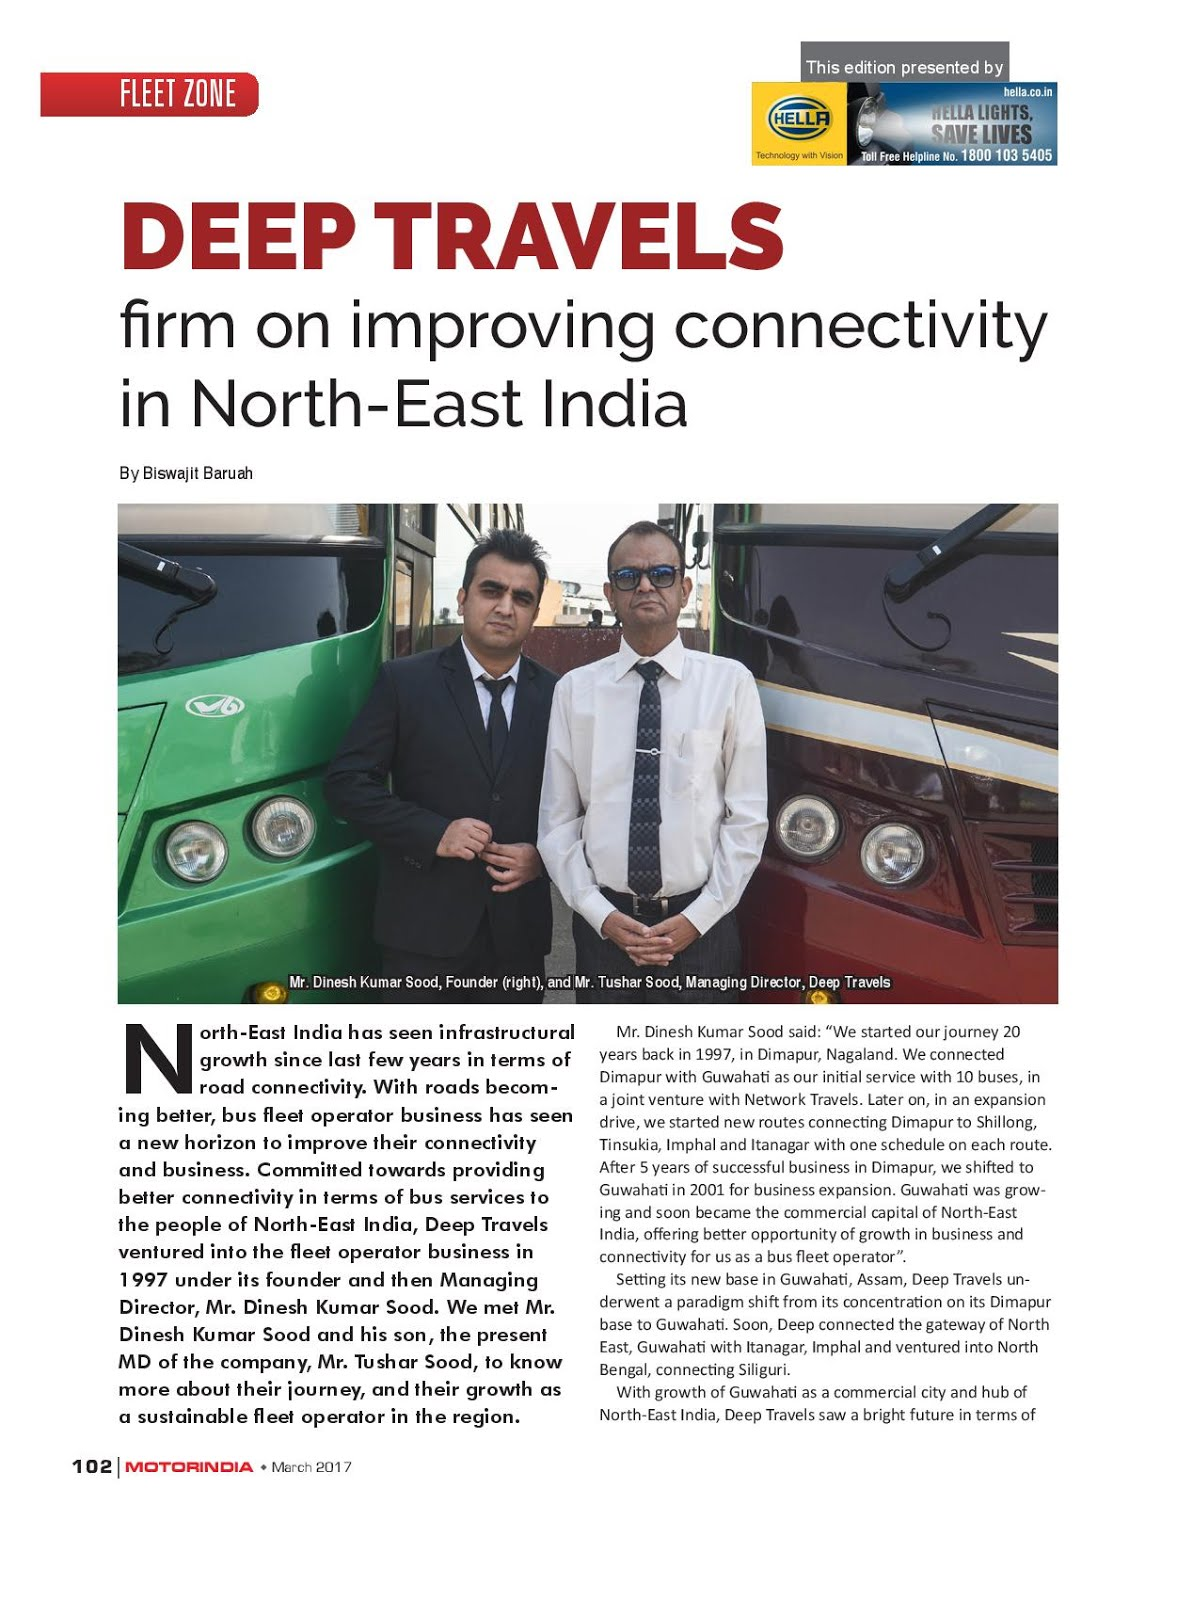 MOTOR INDIA ARTICLE 11 : DEEP TRAVELS